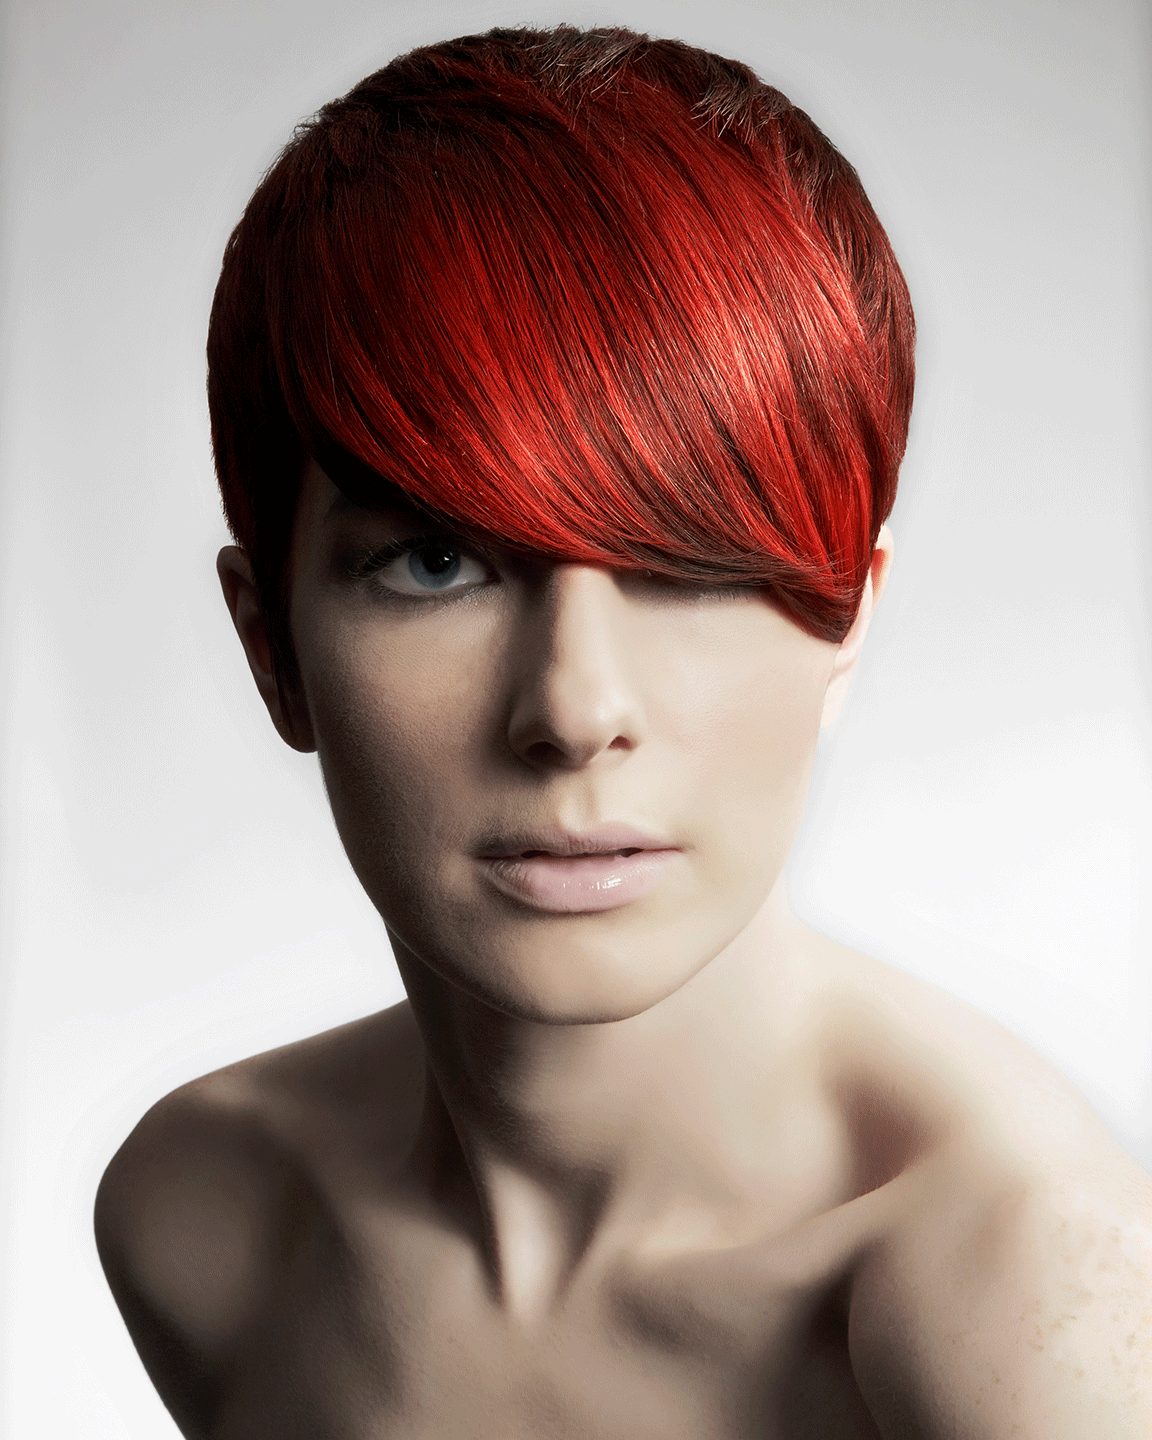 49 Cool Stylish Short Hairstyles For Women Short Hairstyles For Women Short Hair Styles Short Red Hair